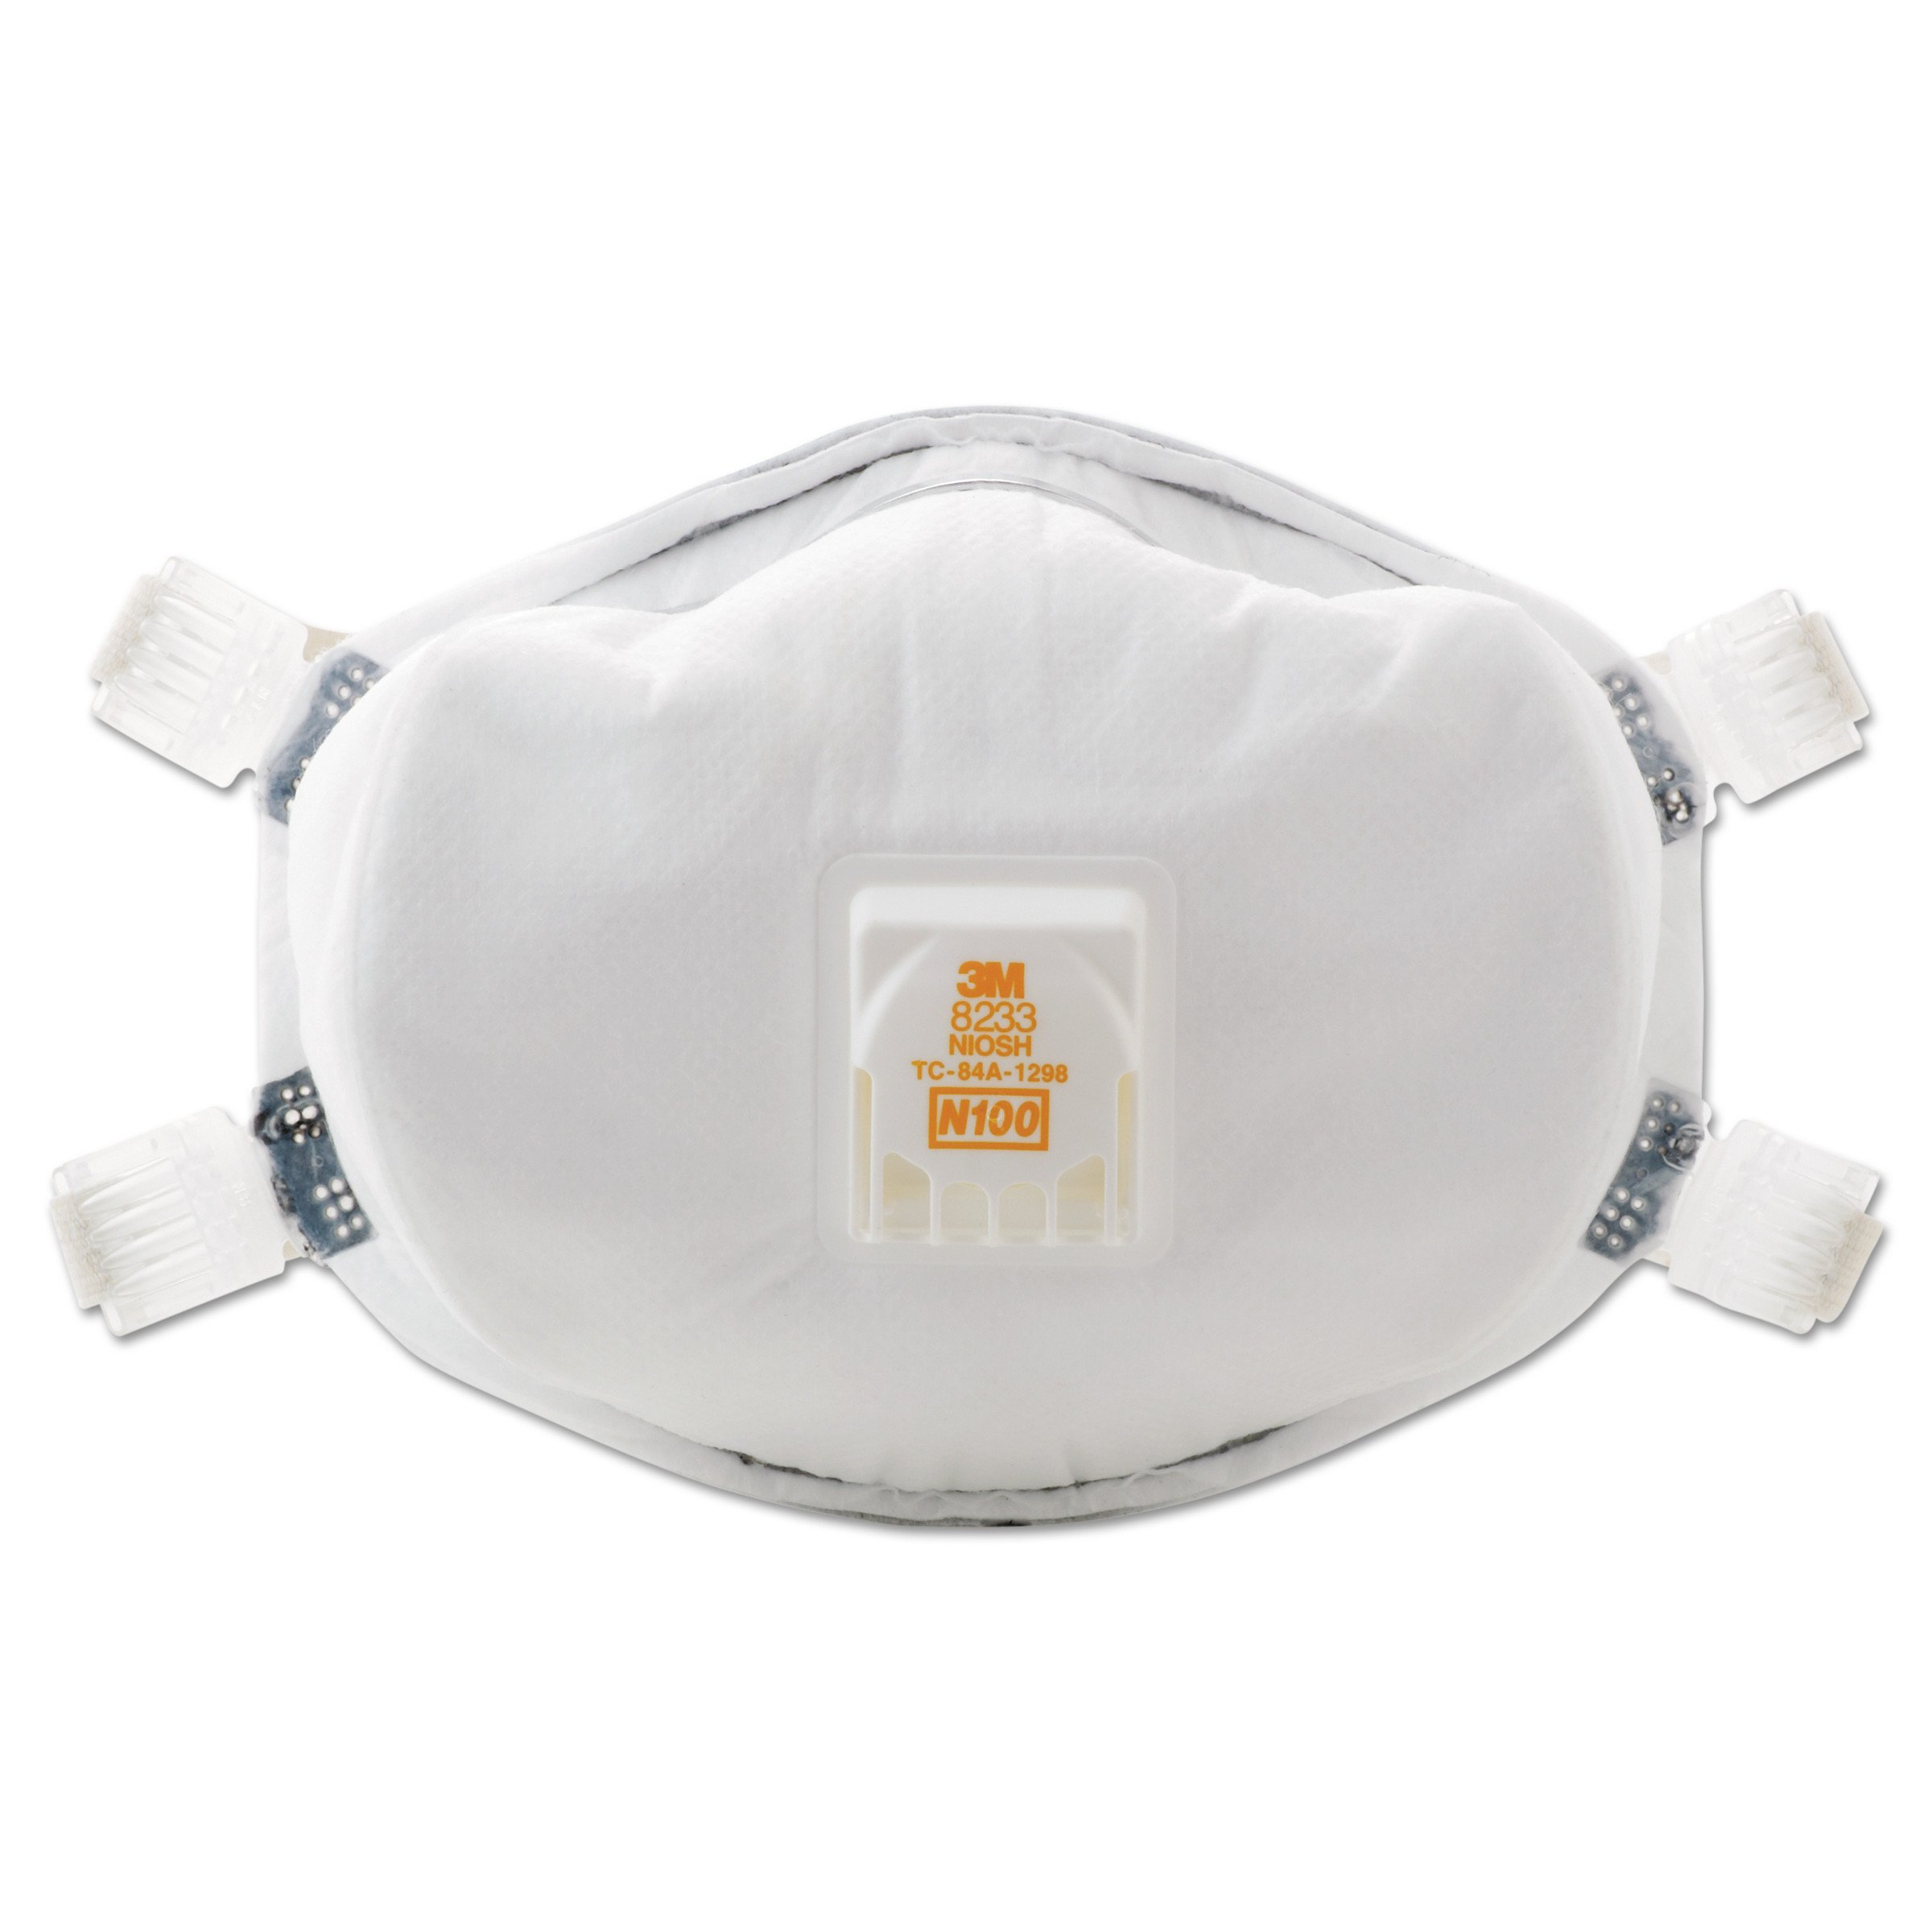 3M Particulate Respirator 8233, N100 product image